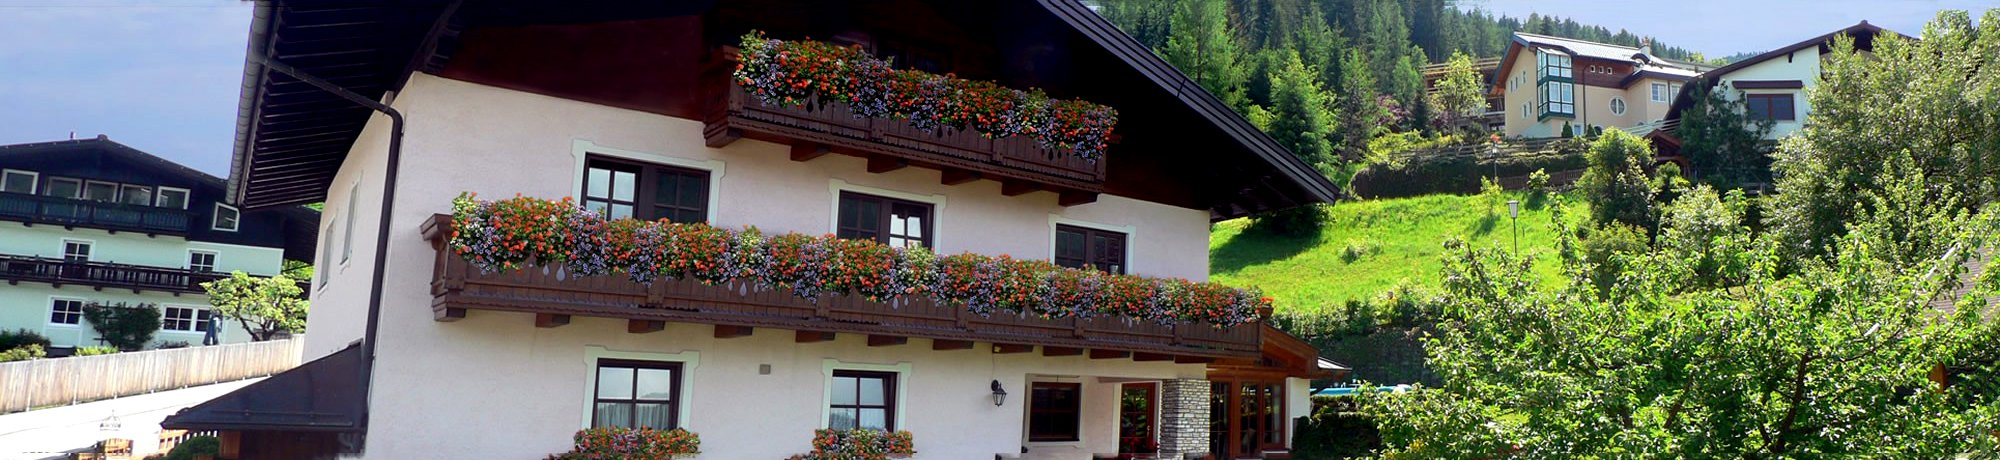 Appartements in Eben im Pongau